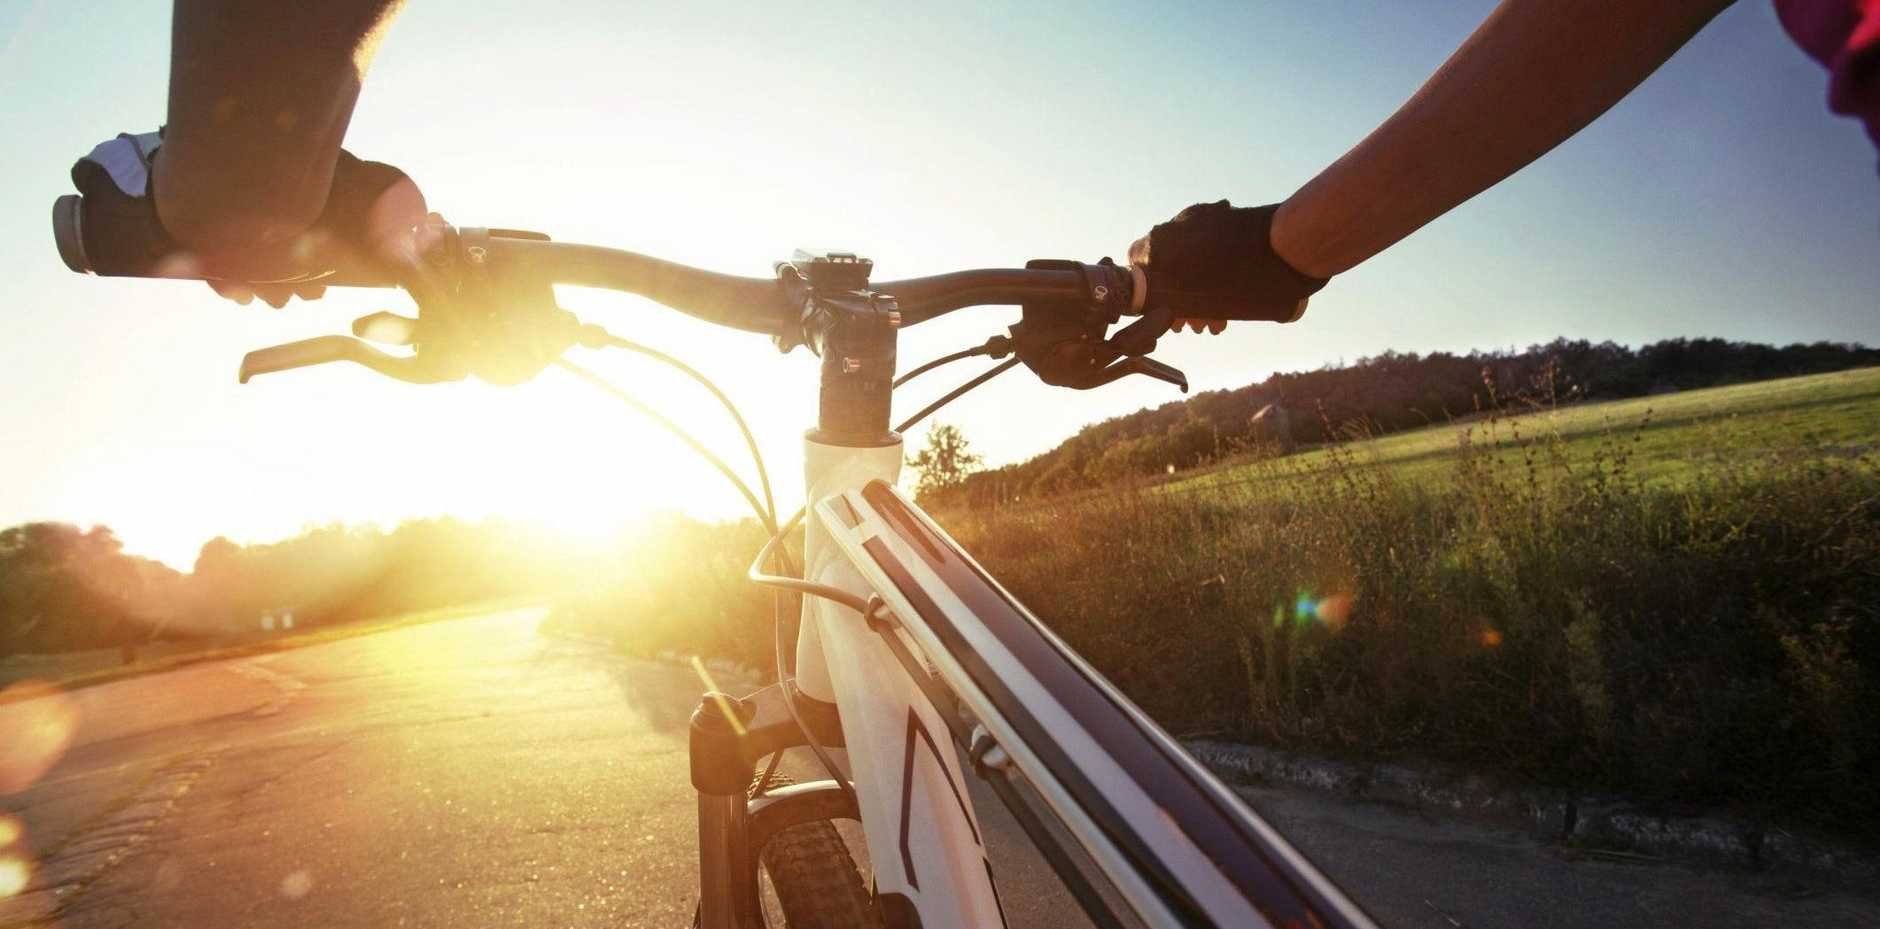 The Queensland Government says the costs involved with charging bike riders a registration fee